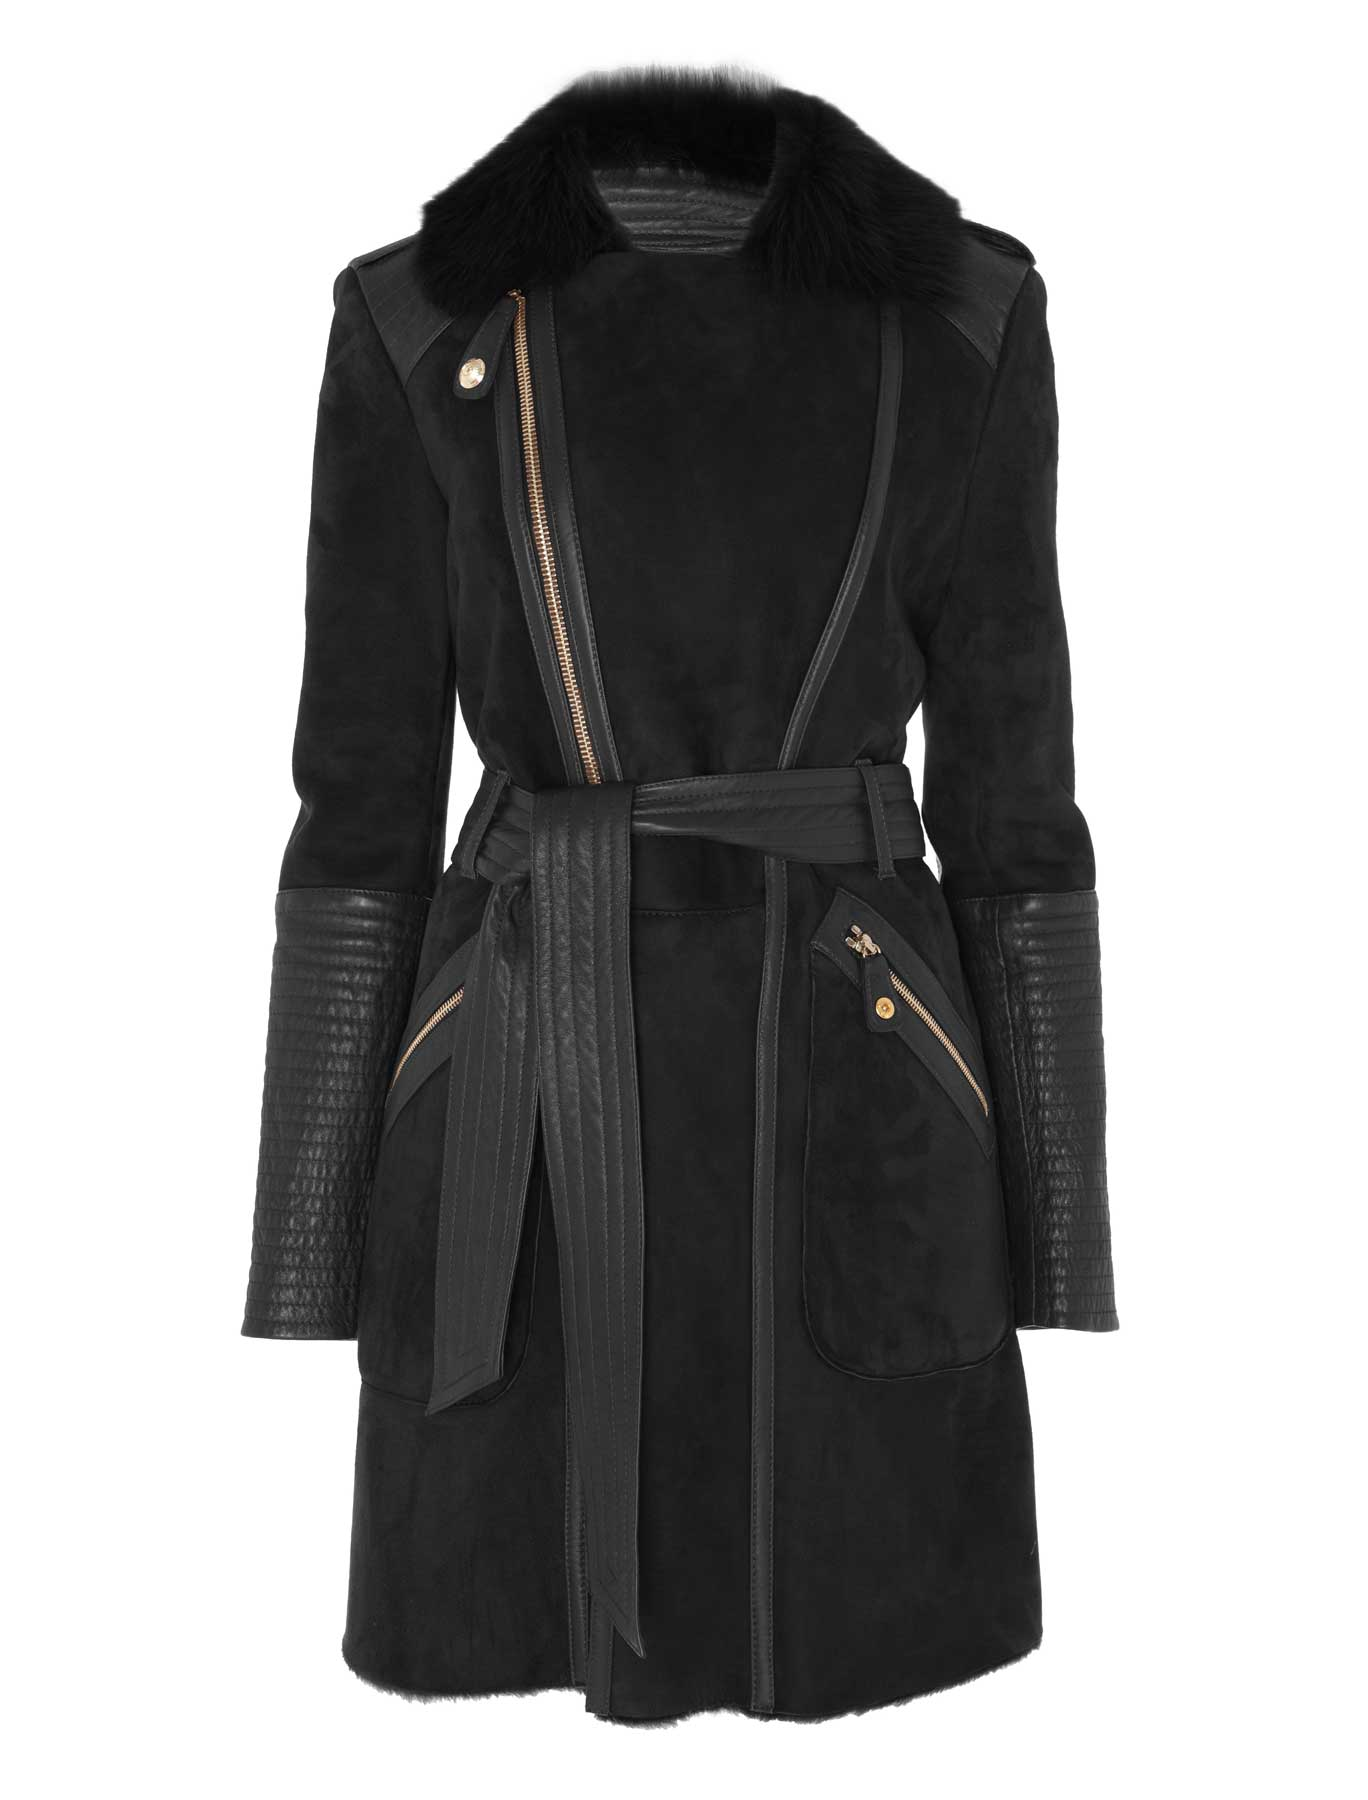 Temperley london Classic Odele Sheepskin Coat in Black | Lyst